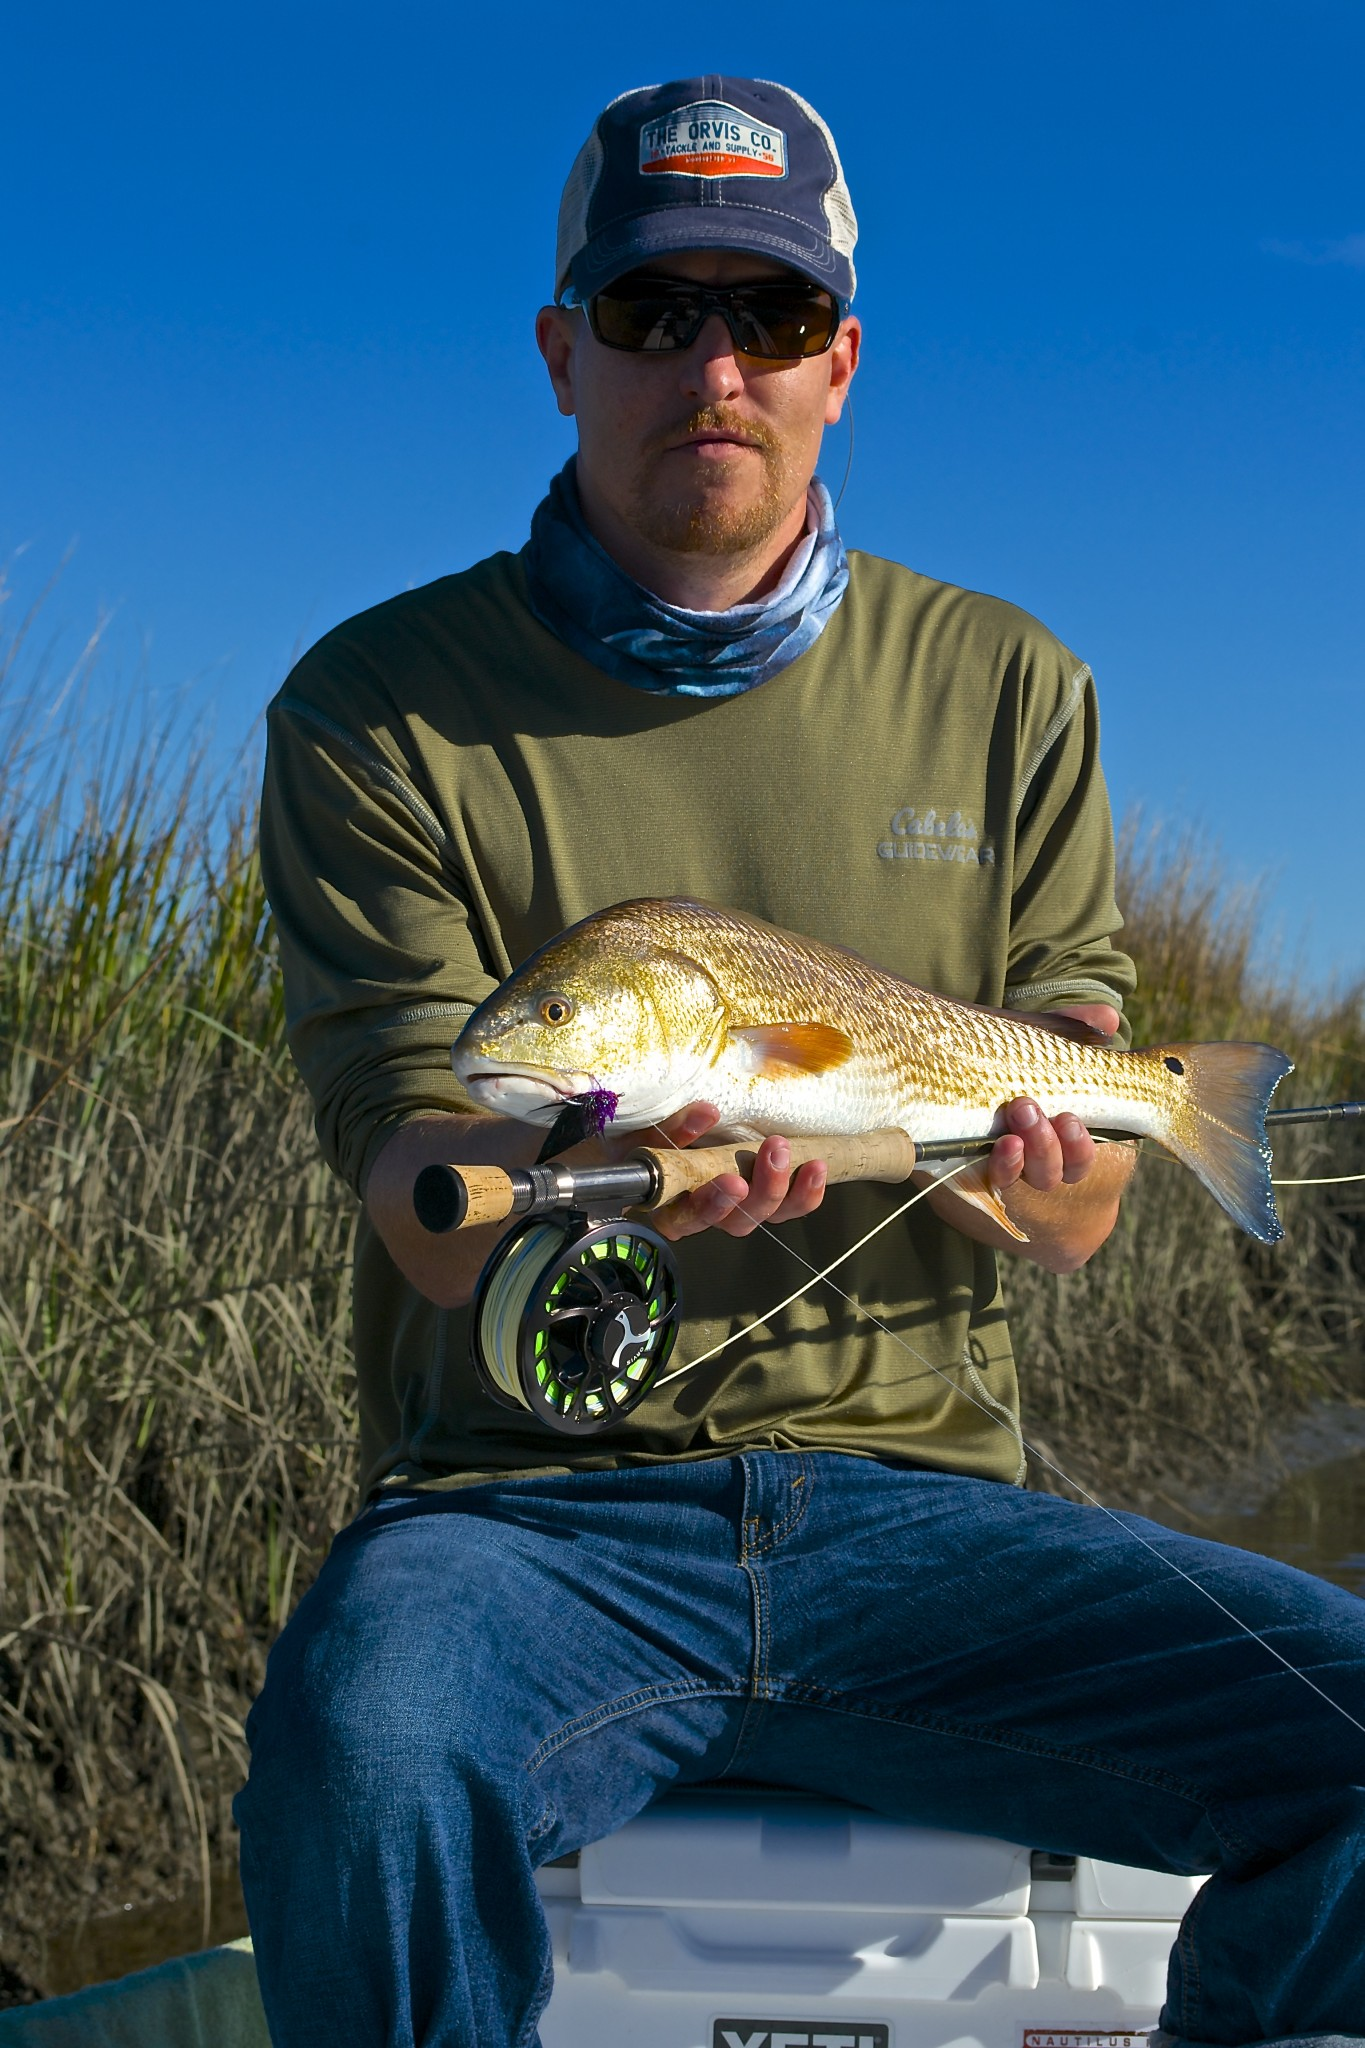 Pawleys Island fishing Charter- Fly fishing